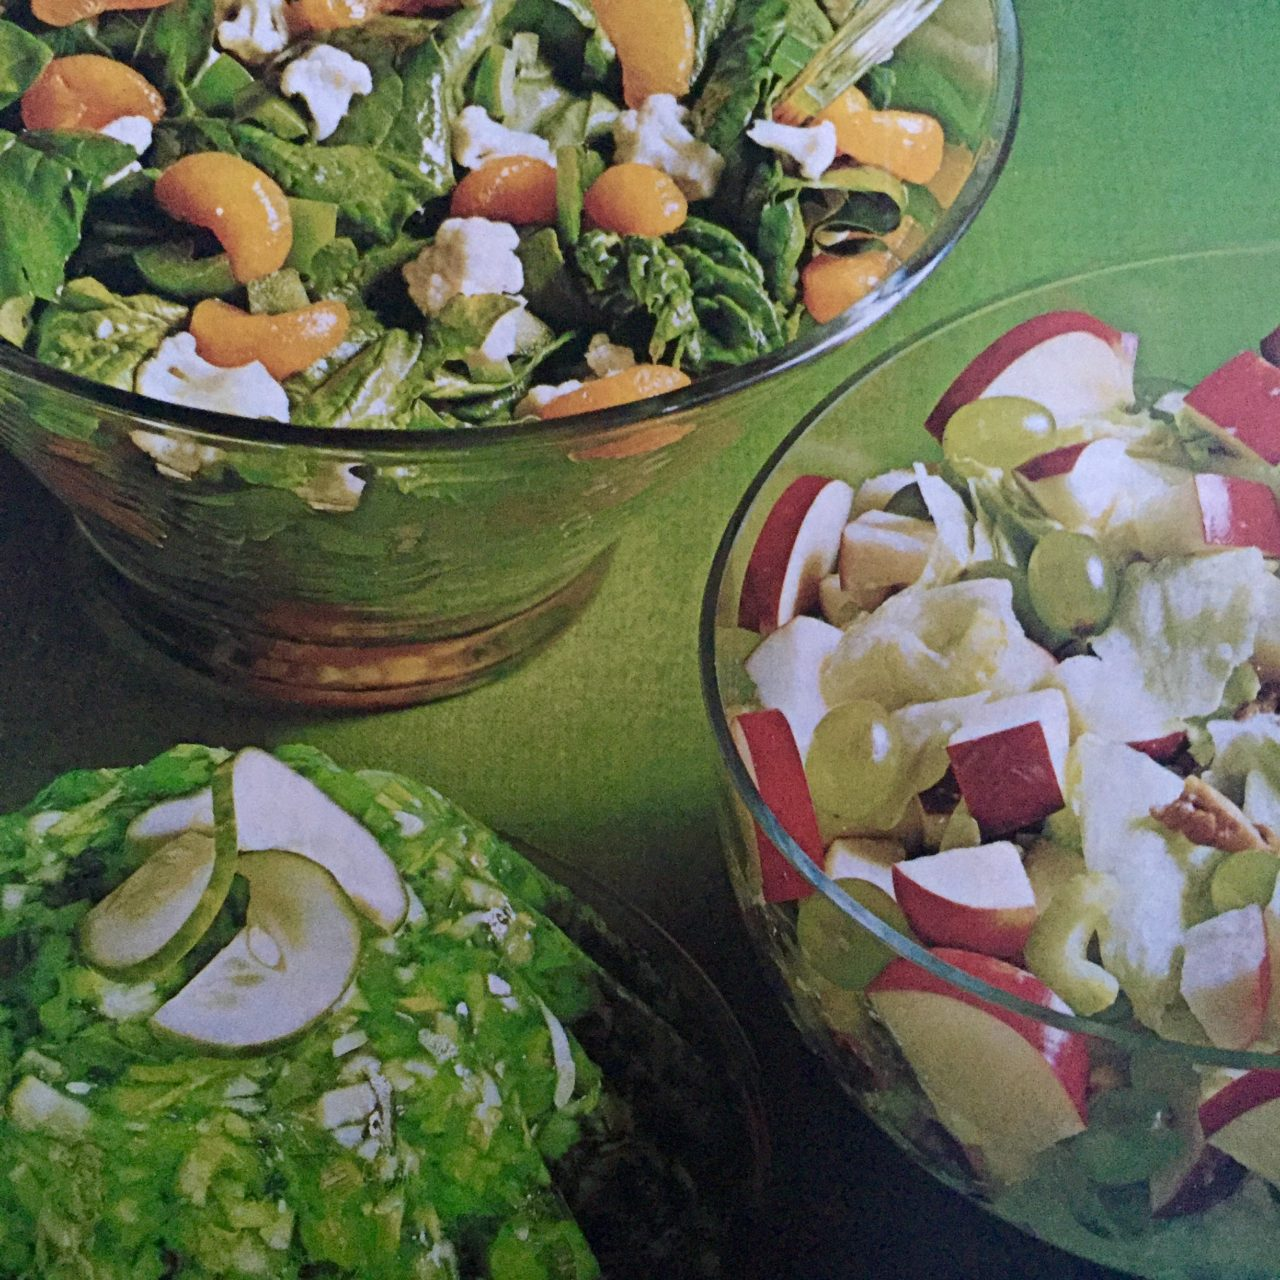 Vintage Cookbooks: Betty Crocker's Good and Easy Cookbook (1971)